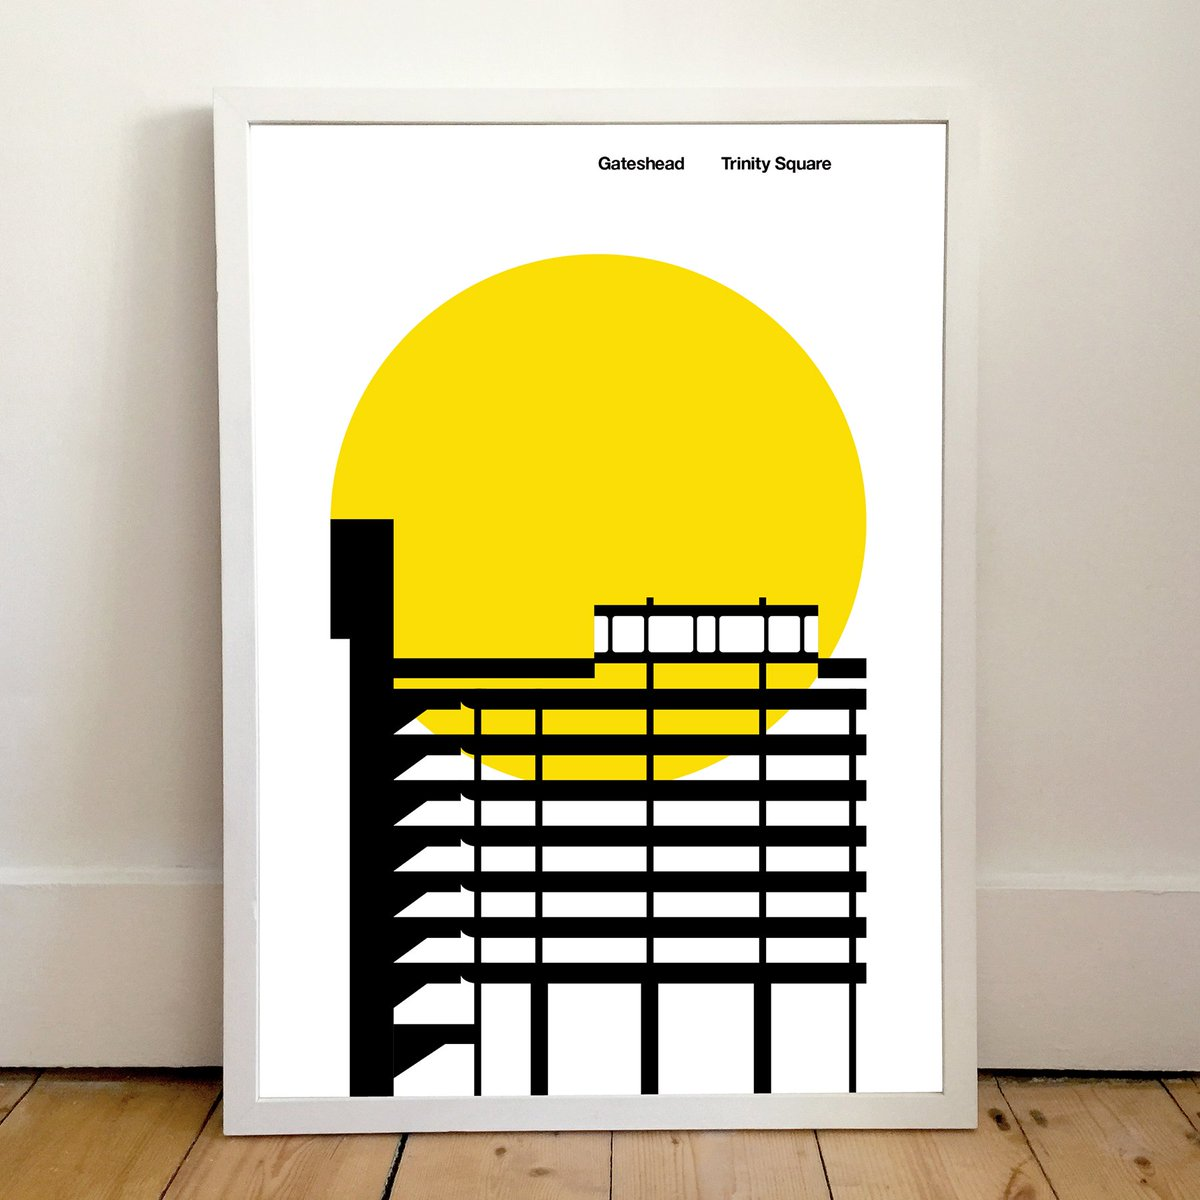 Peter Chadwick's Trinity Square poster